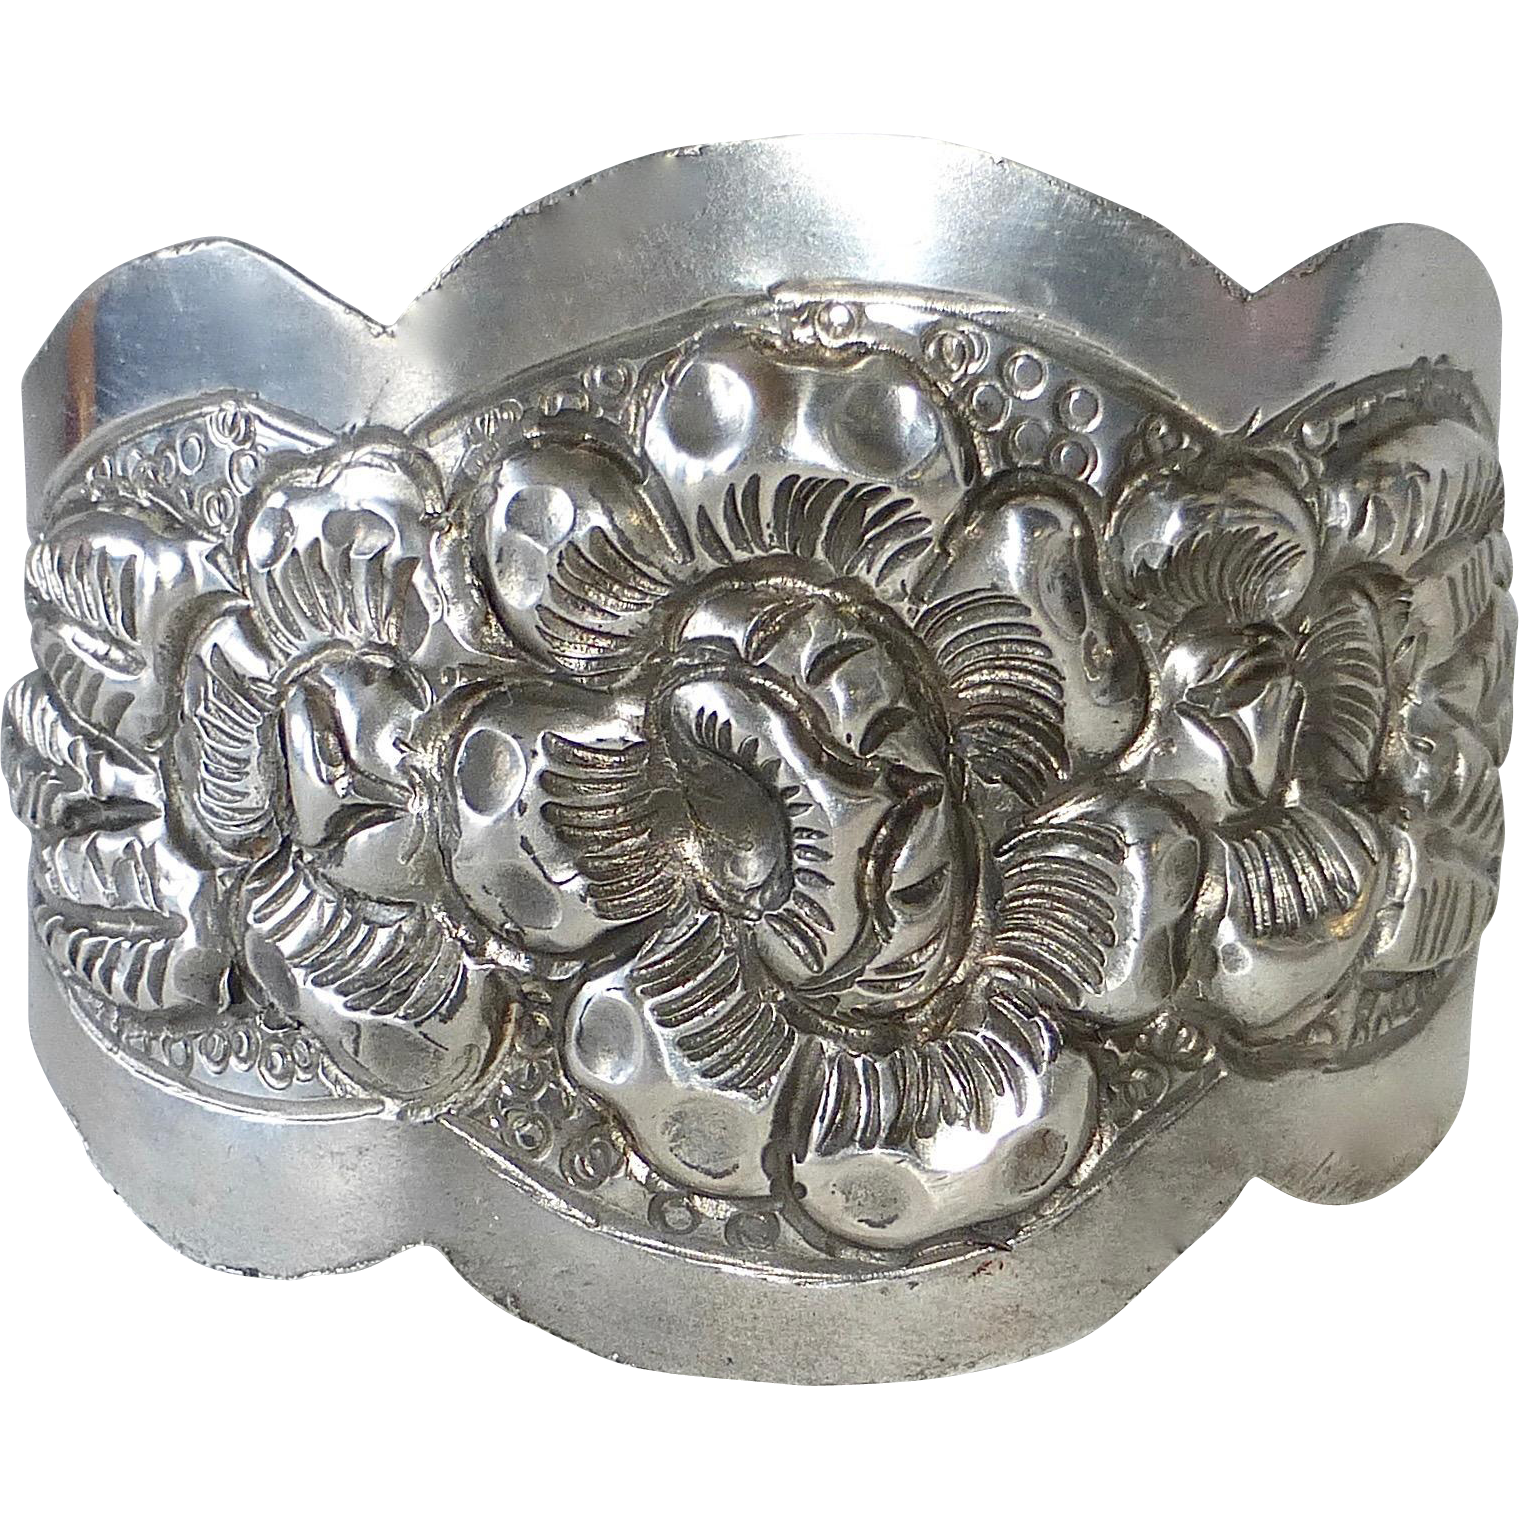 Rare Repousse Sterling Cuff Bracelet Made in Mexico for Germany